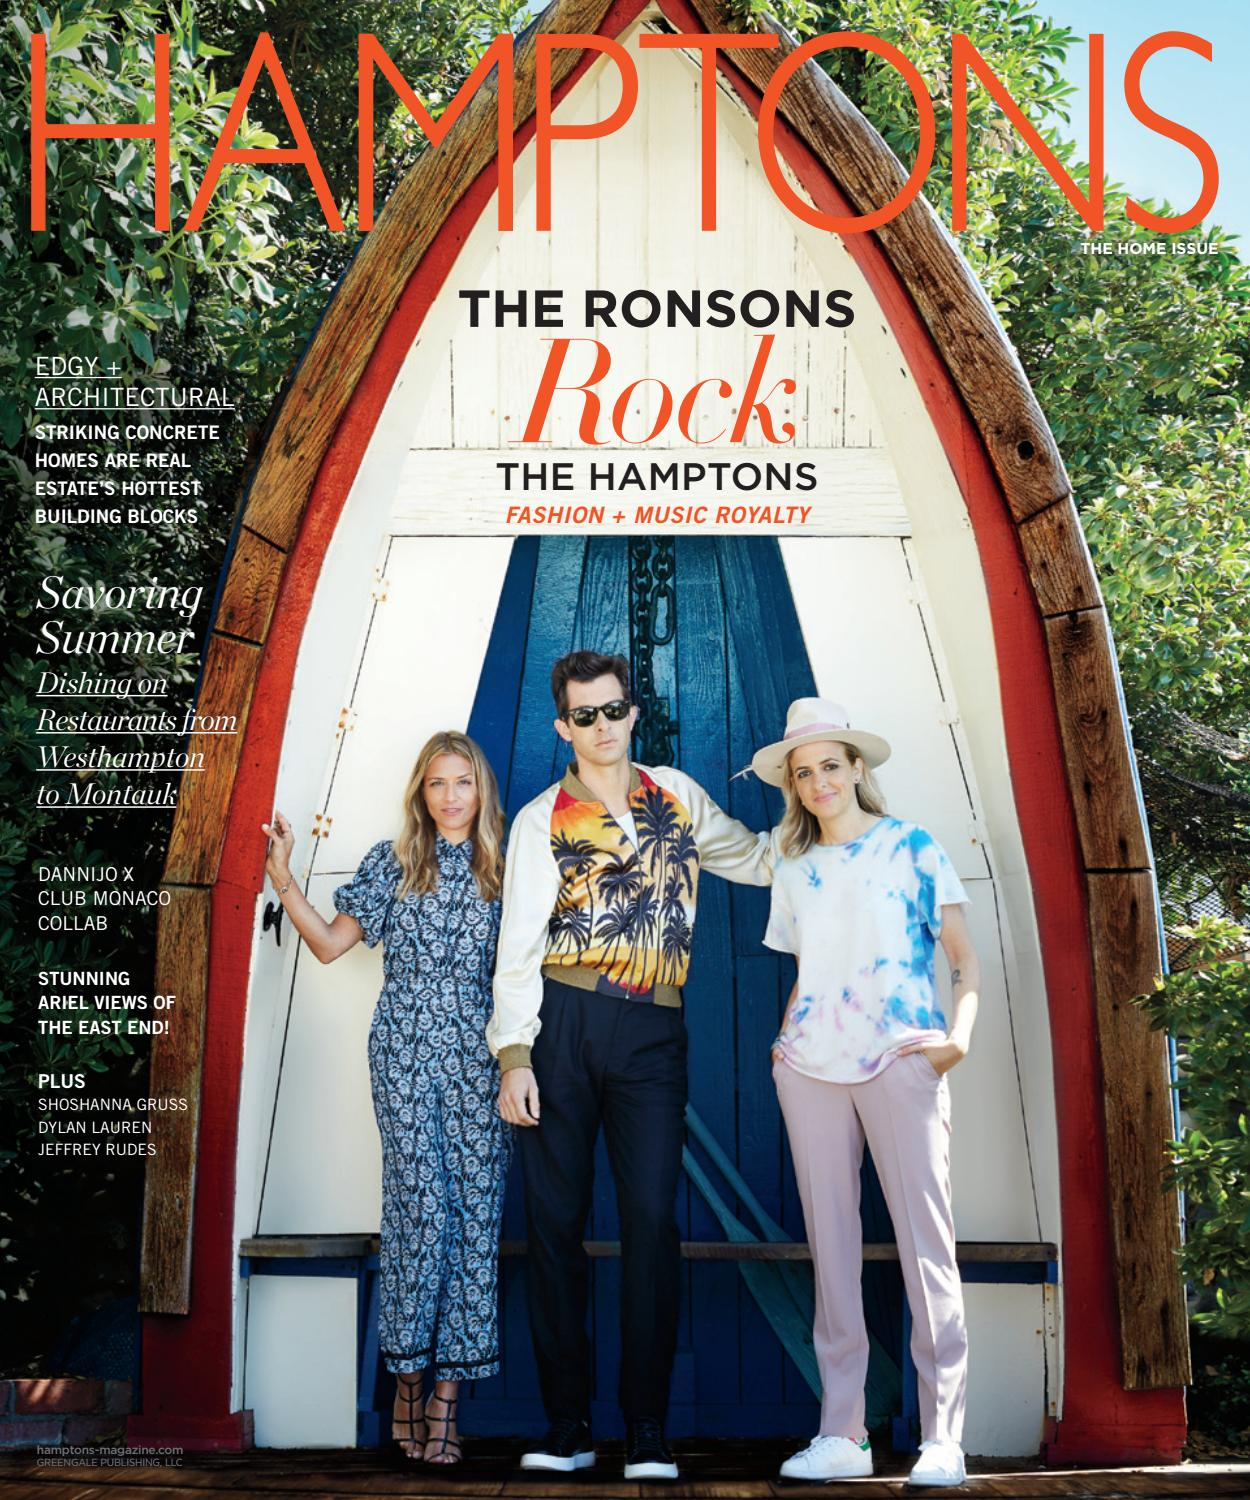 5d6cb5d7a19a9 Hamptons - 2016 - Issue 2 - Home   Design - The Ronsons by MODERN LUXURY -  issuu